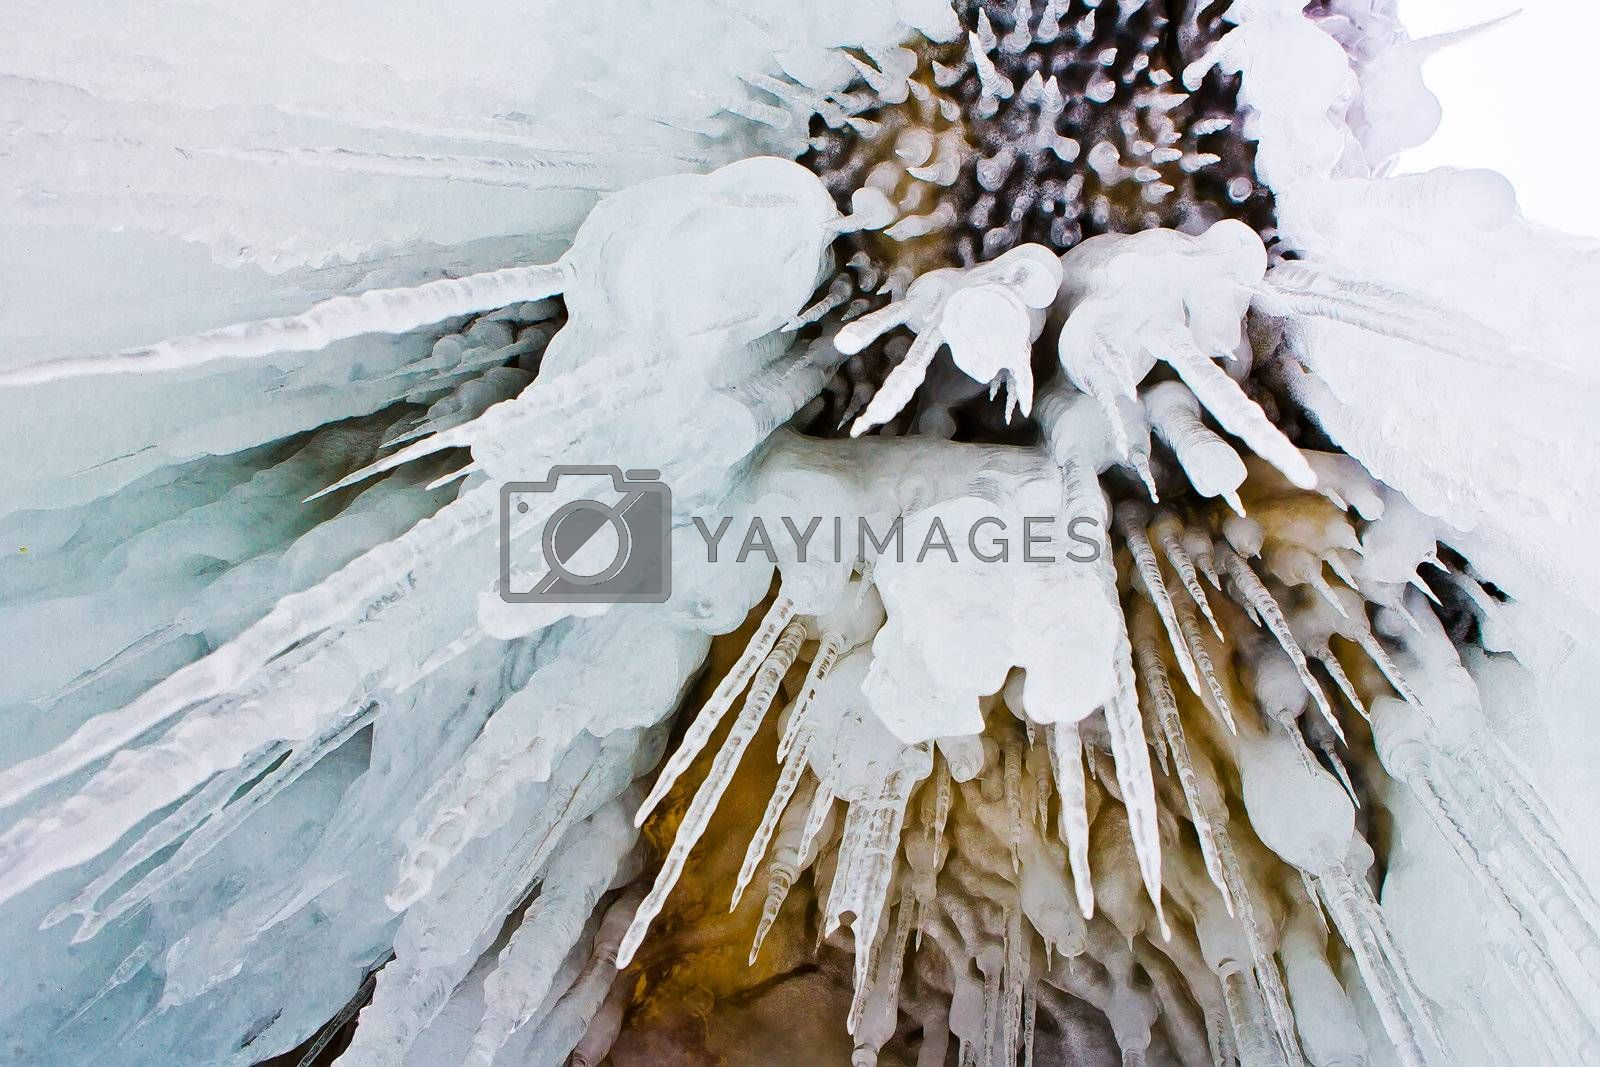 Royalty free image of Dangerous icicles by shamanov